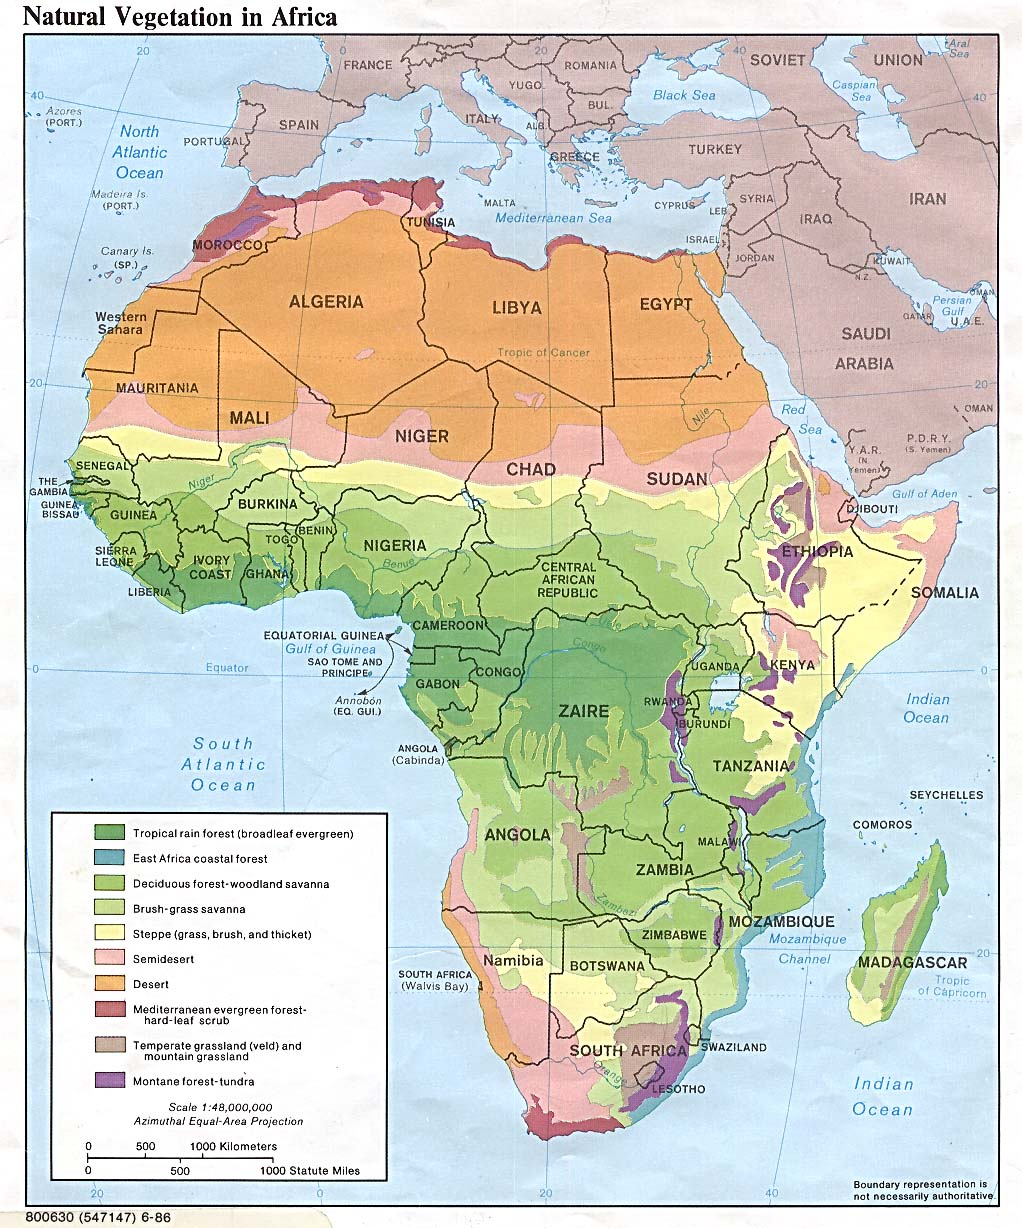 Africa Natural Vegetation 1986